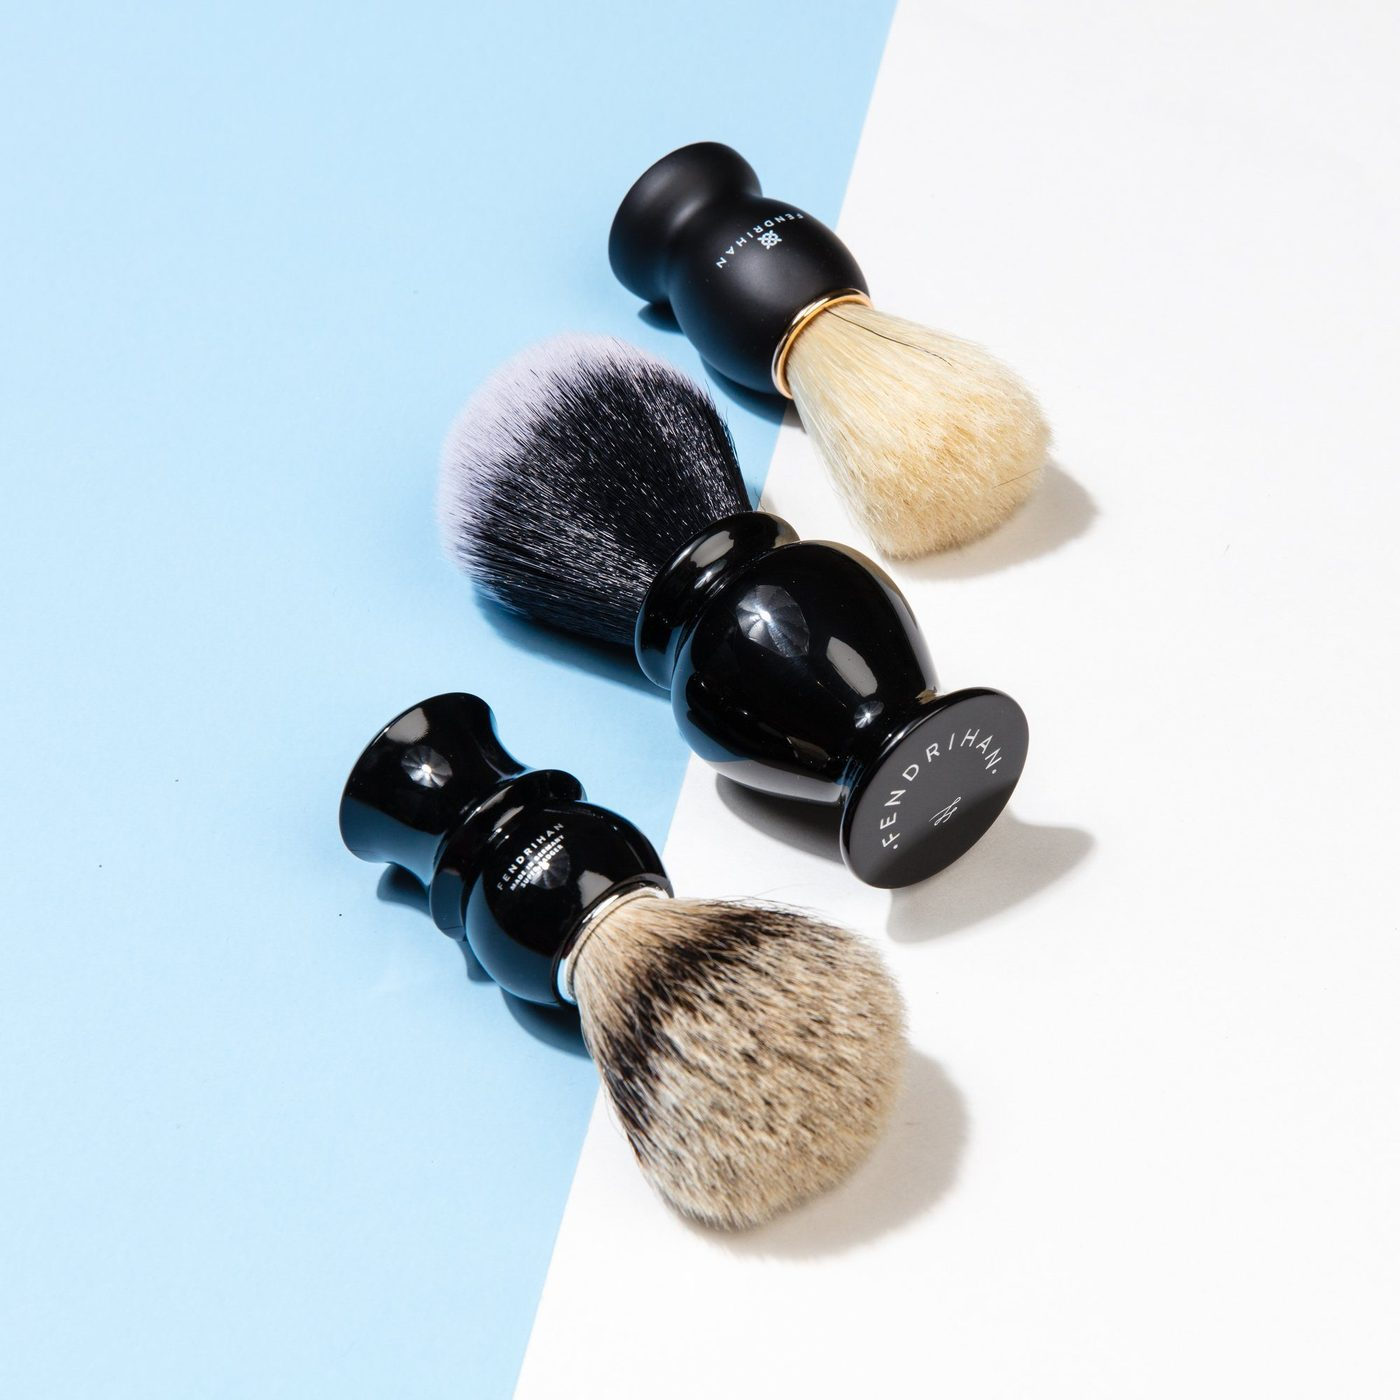 Natural vs. Synthetic Shaving Brushes